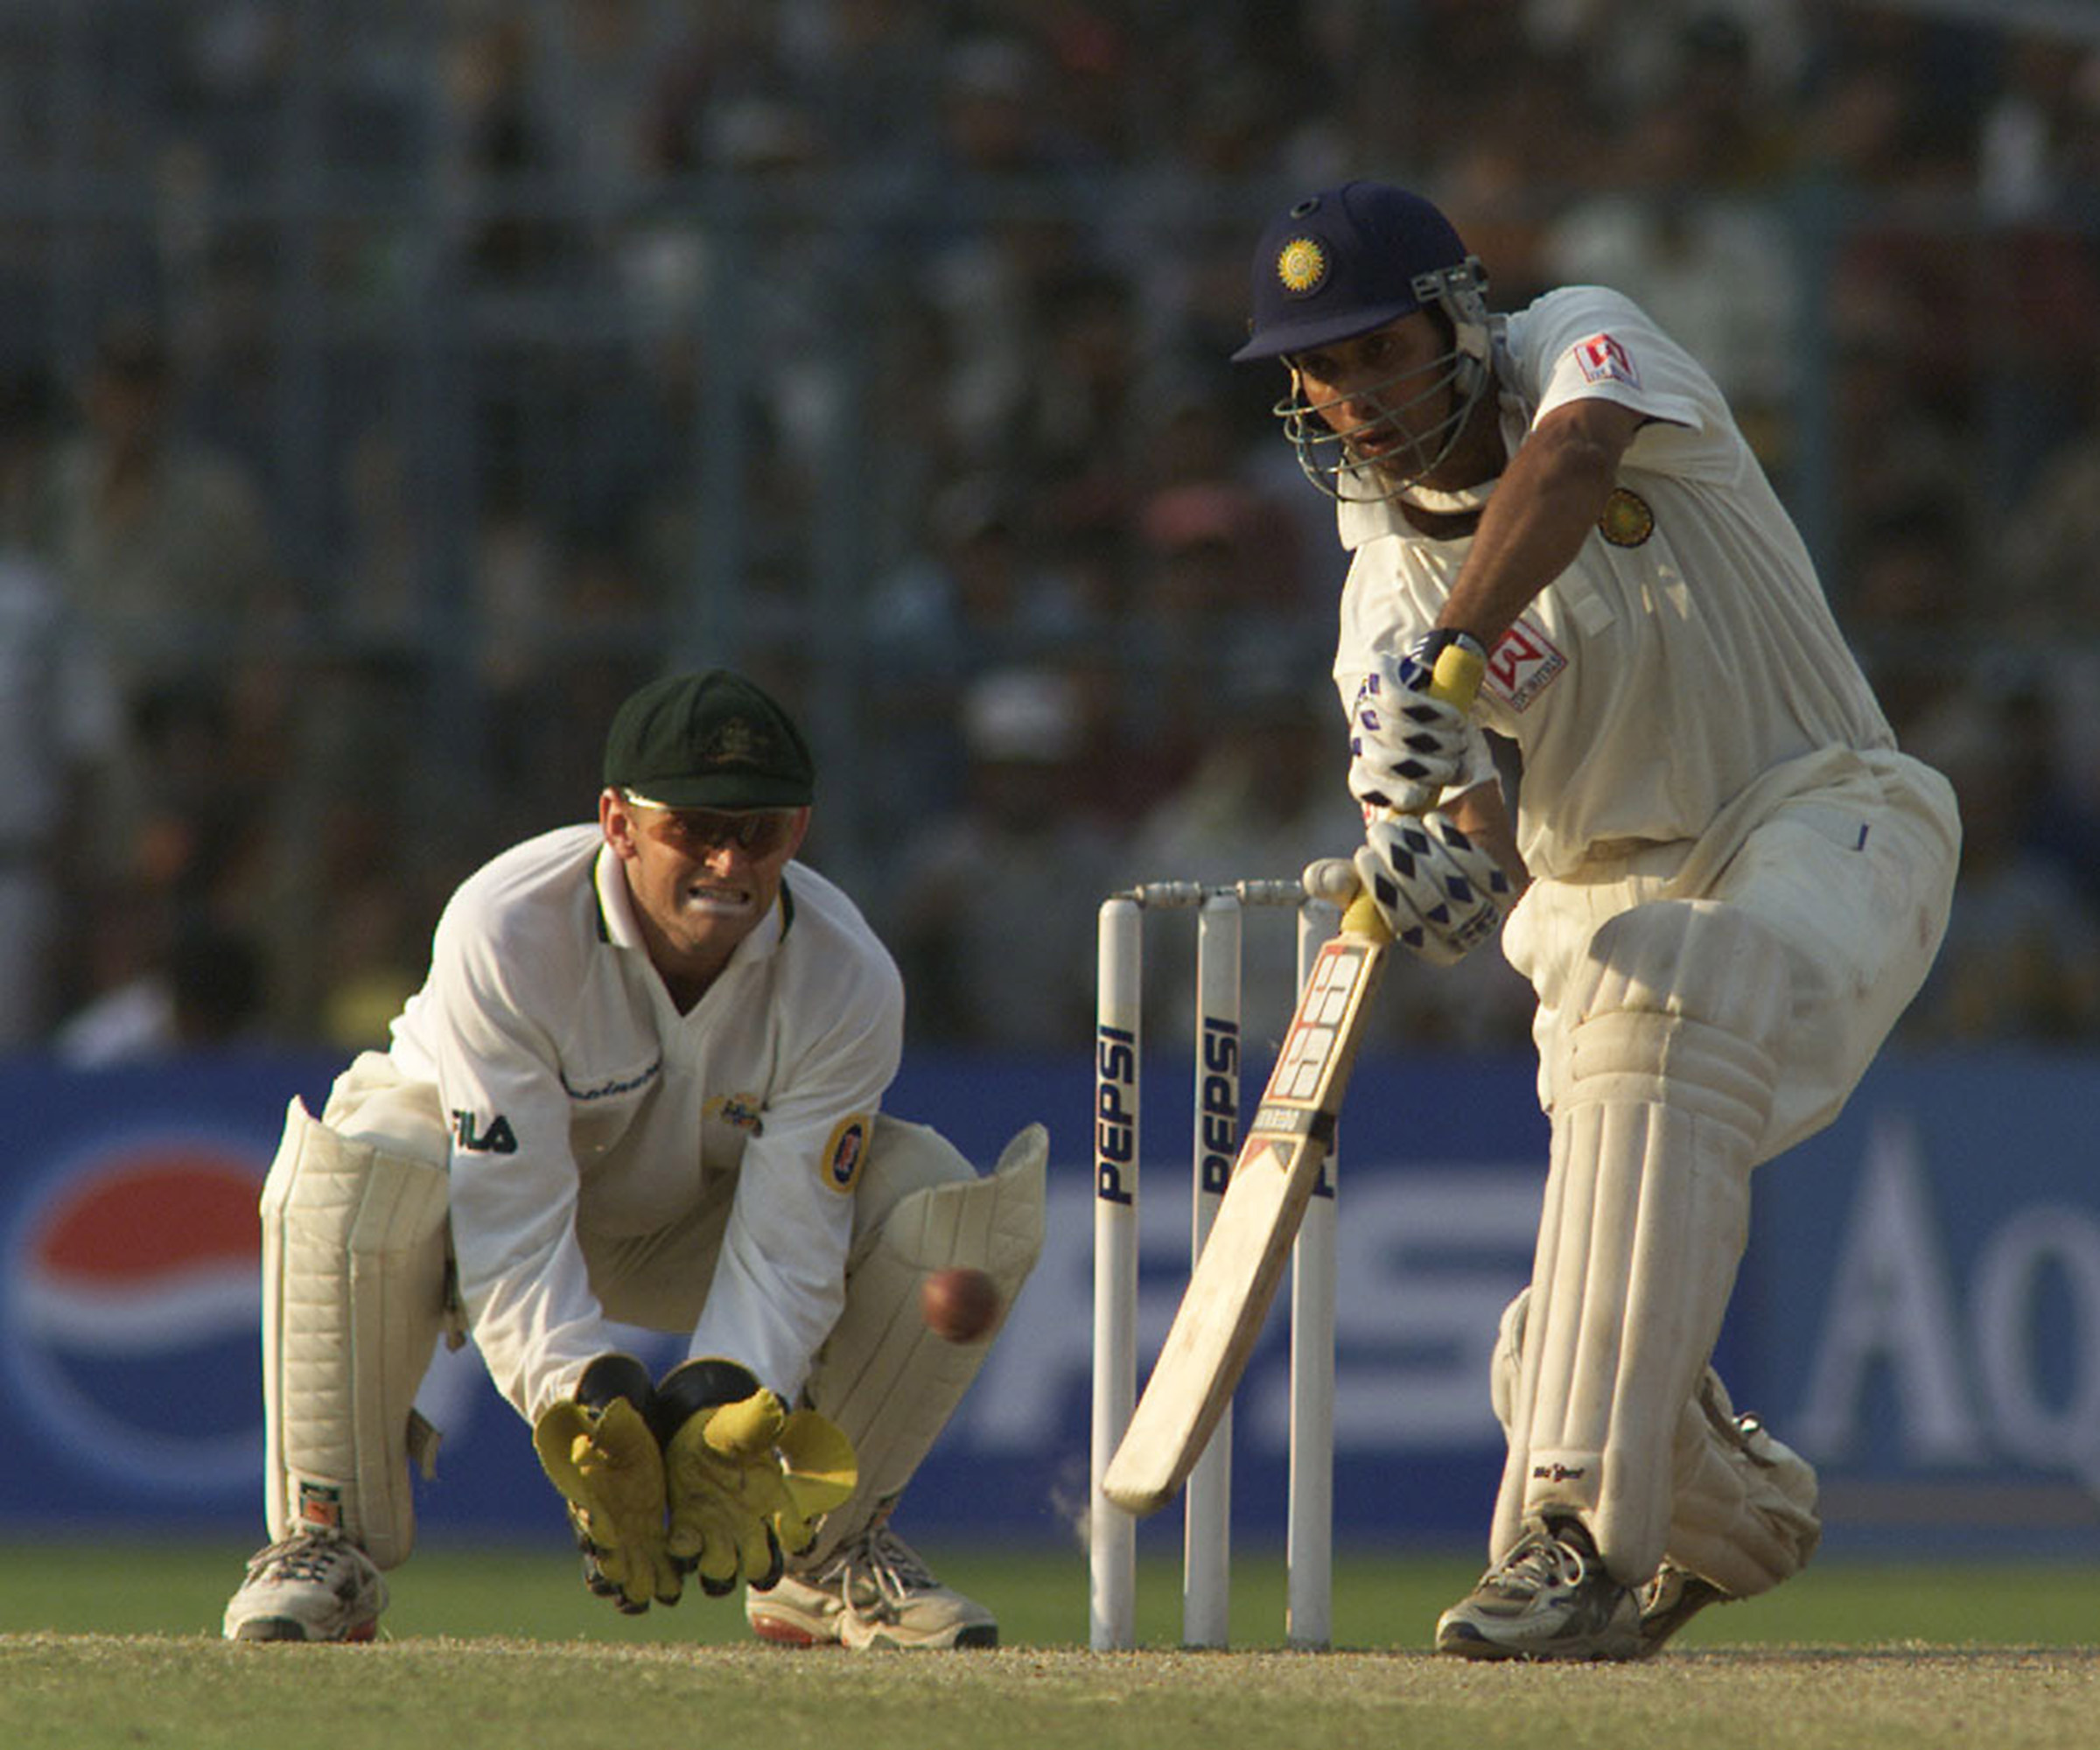 Laxman's innings was praised right around the world // Getty